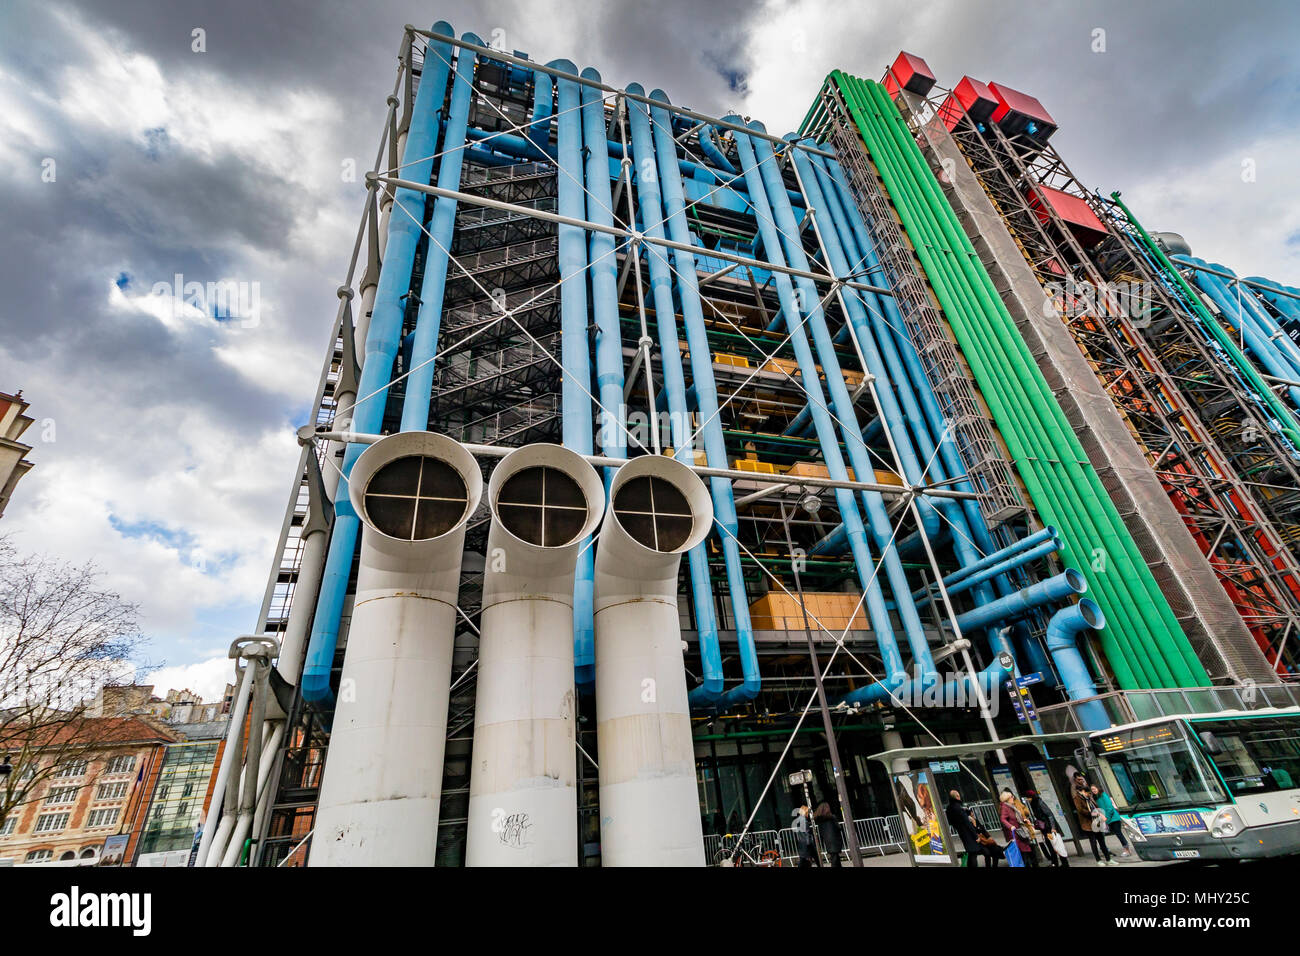 Primary colours and exposed pipework and airducts of the Centre Georges Pompidou ,Paris ,France - Stock Image